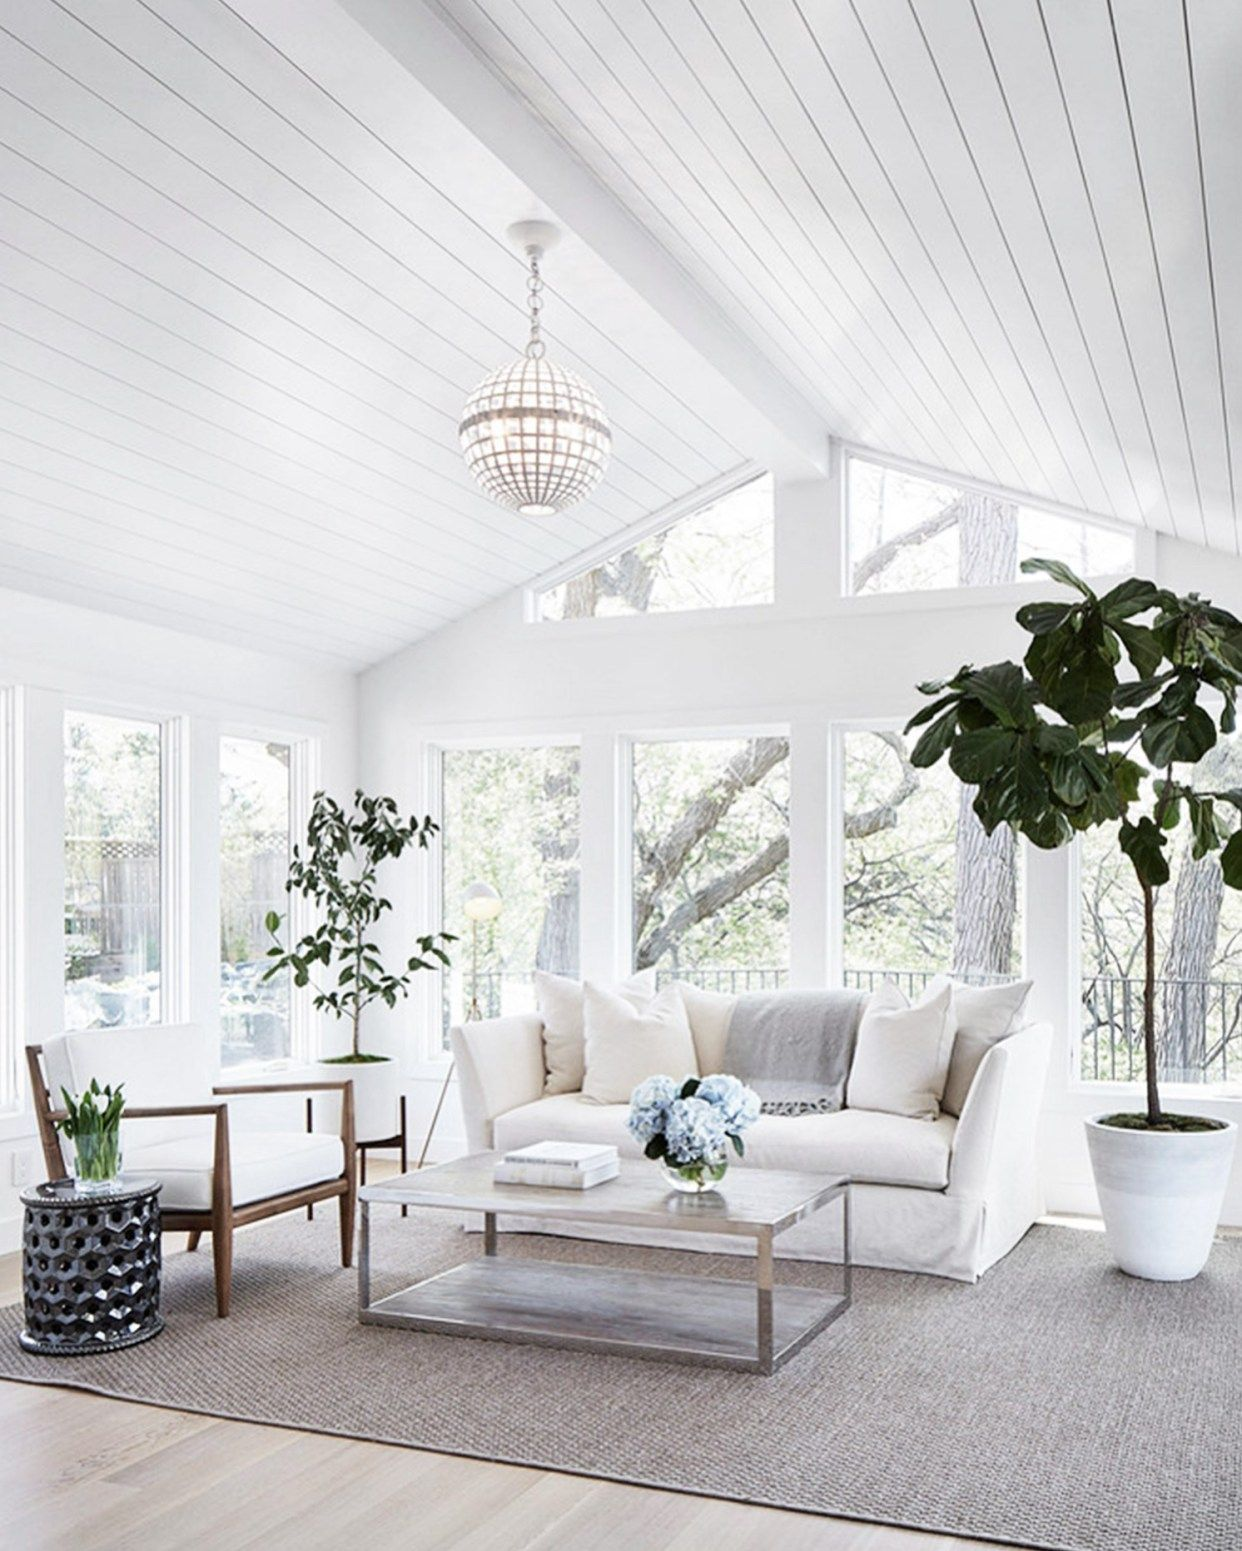 11 Stunning Vaulted Ceilings #vaultedceilingdecor